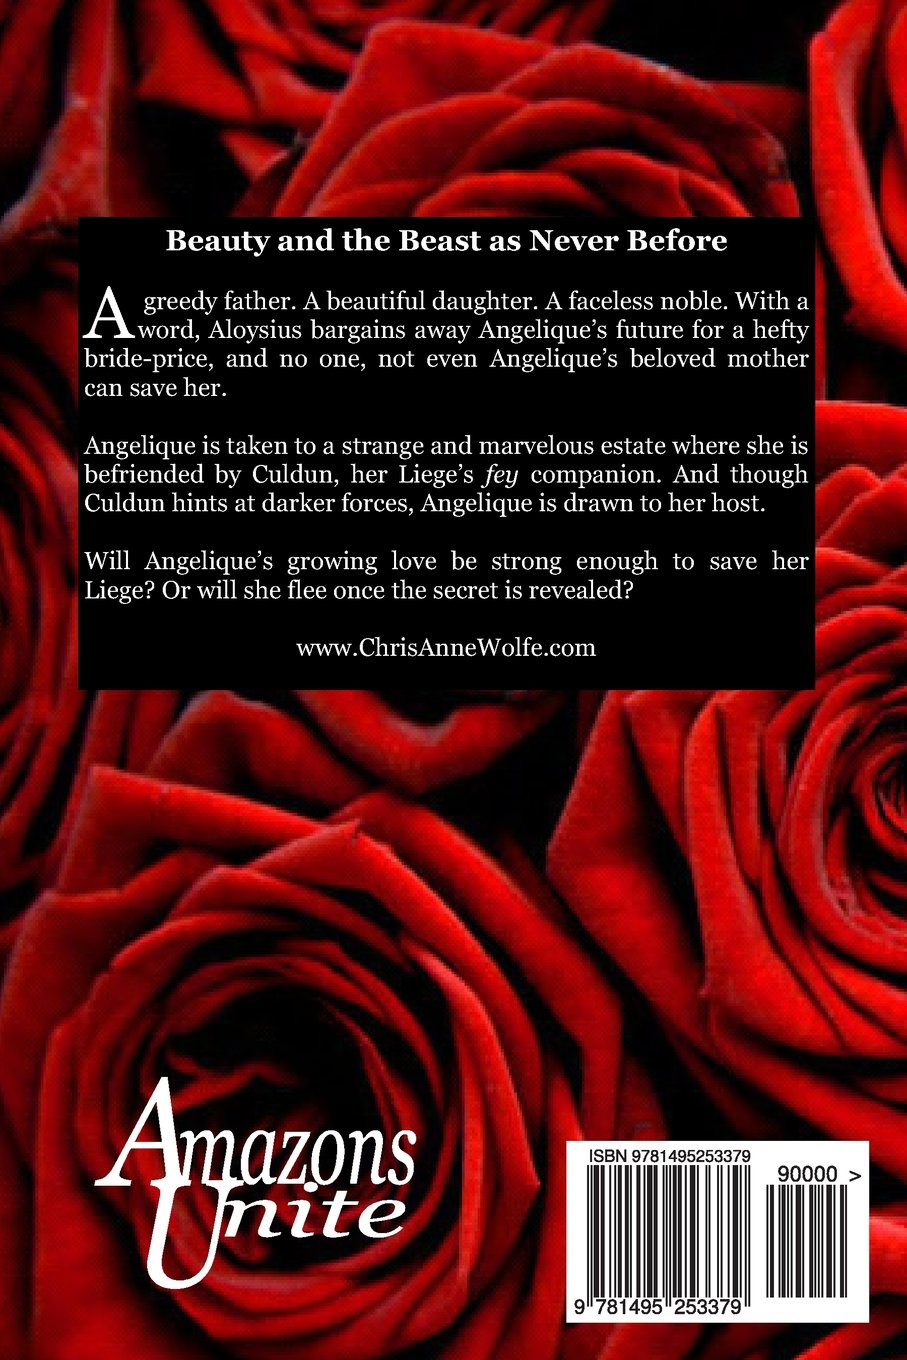 Roses & Thorns: Beauty And The Beast Retold (amazons Unite Edition): Chris  Anne Wolfe: 9781495253379: Amazon: Books